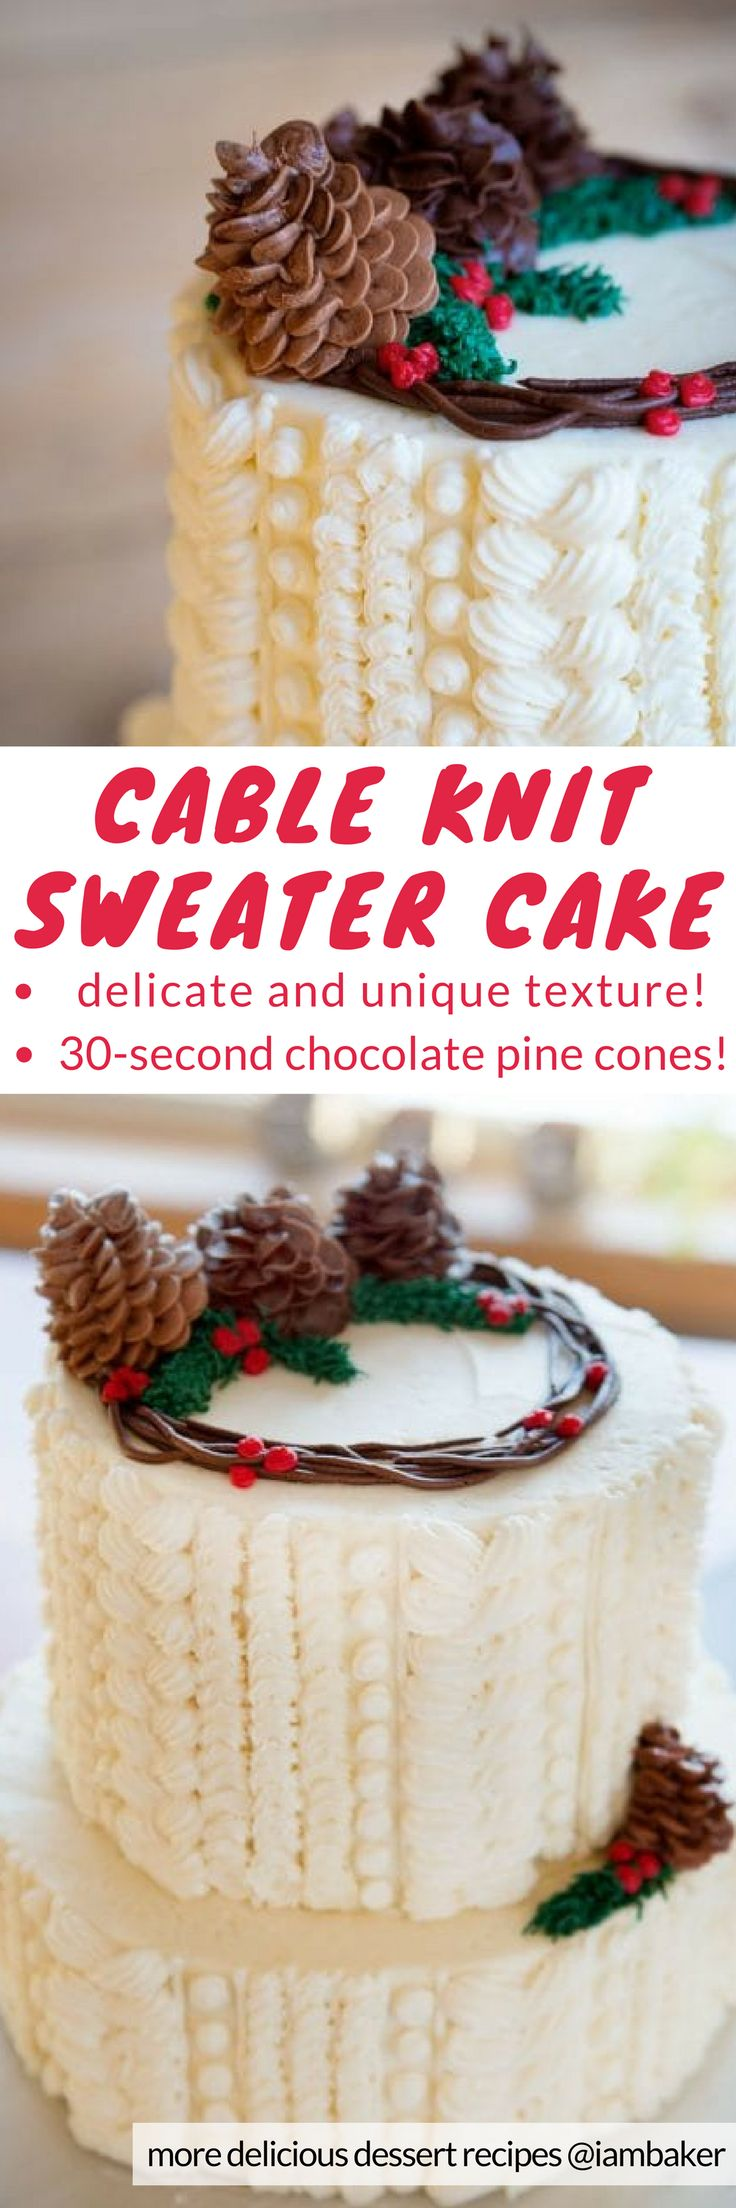 Cable Knit Sweater Cake - by mastering just a few easy piping techniques, you can create this delicious cake! All you need are chocolate cake recipes either made from scratch or box mixes, whipped buttercream for cake decorating and chocolate buttercream for 30-second pine cones!  For more simple and easy dessert recipes to make, check us out at #iambaker. #cakes #desserts #sweettooth #christmasdesserts